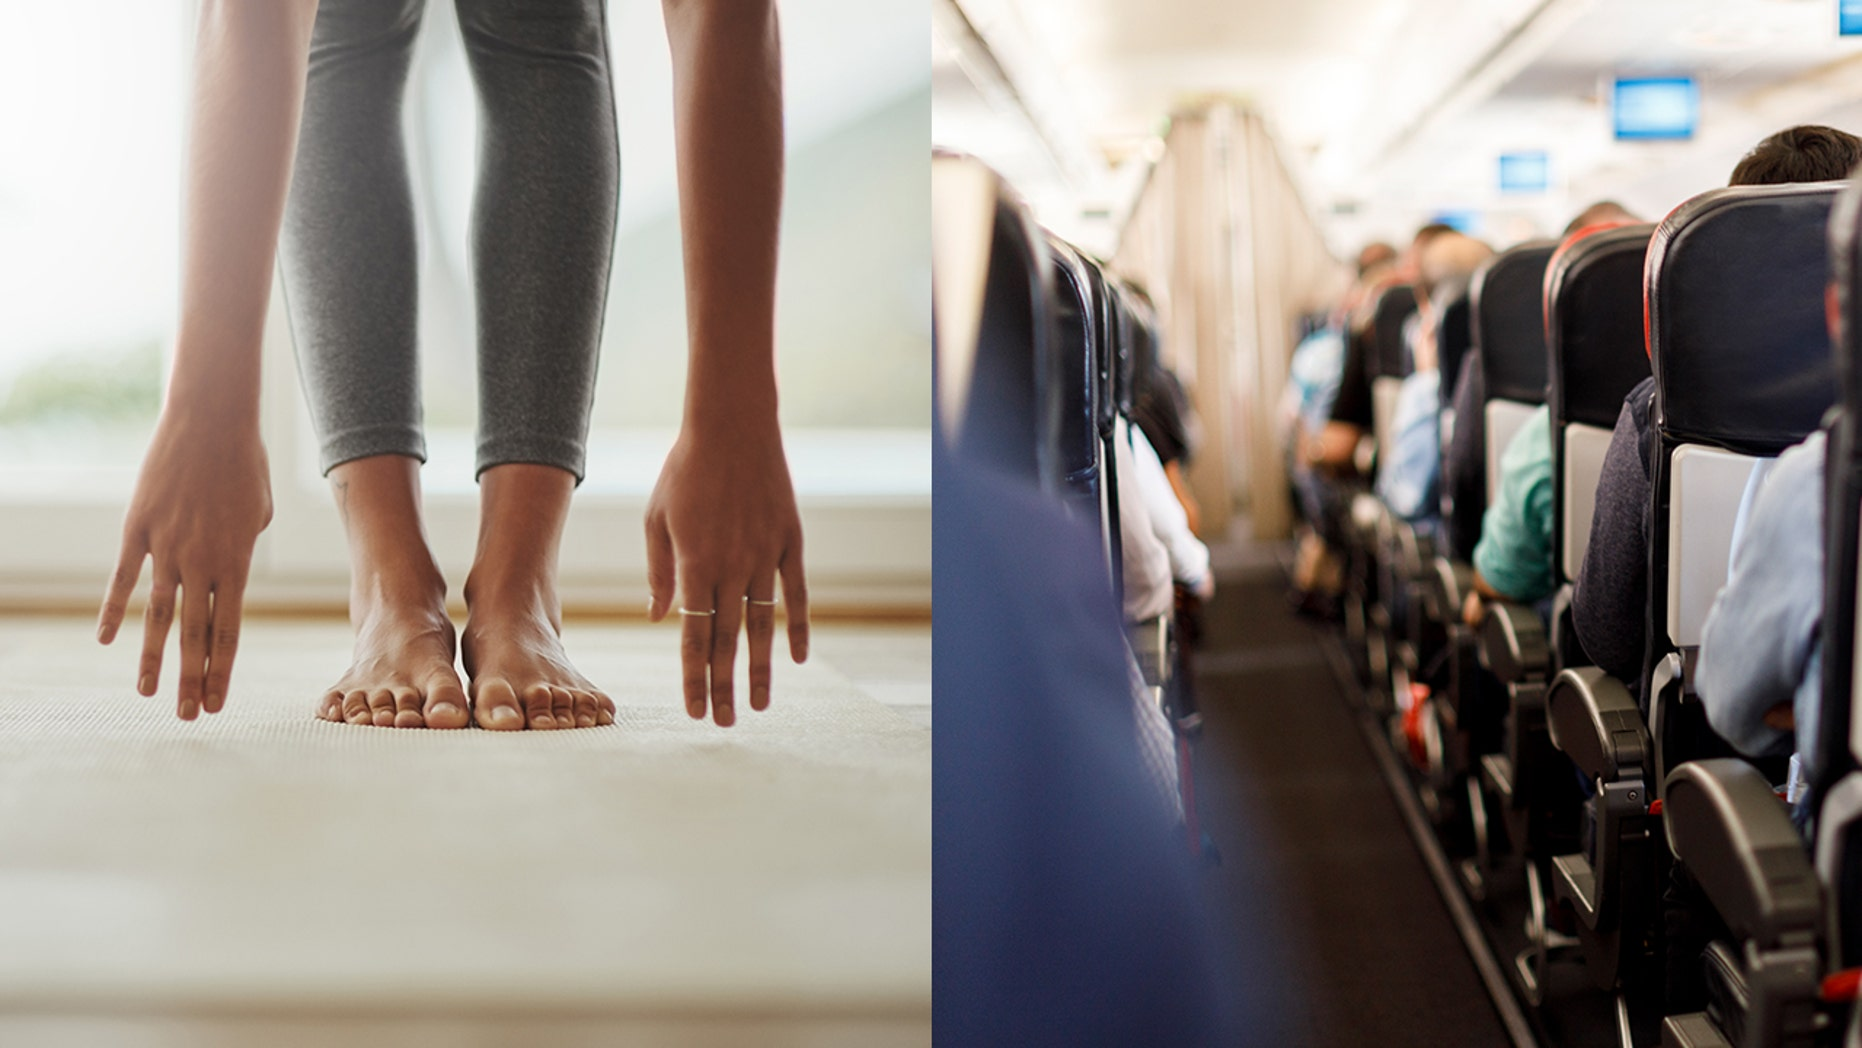 A woman was caught on video doing yoga in an airplane aisle, but some people had a problem with it.